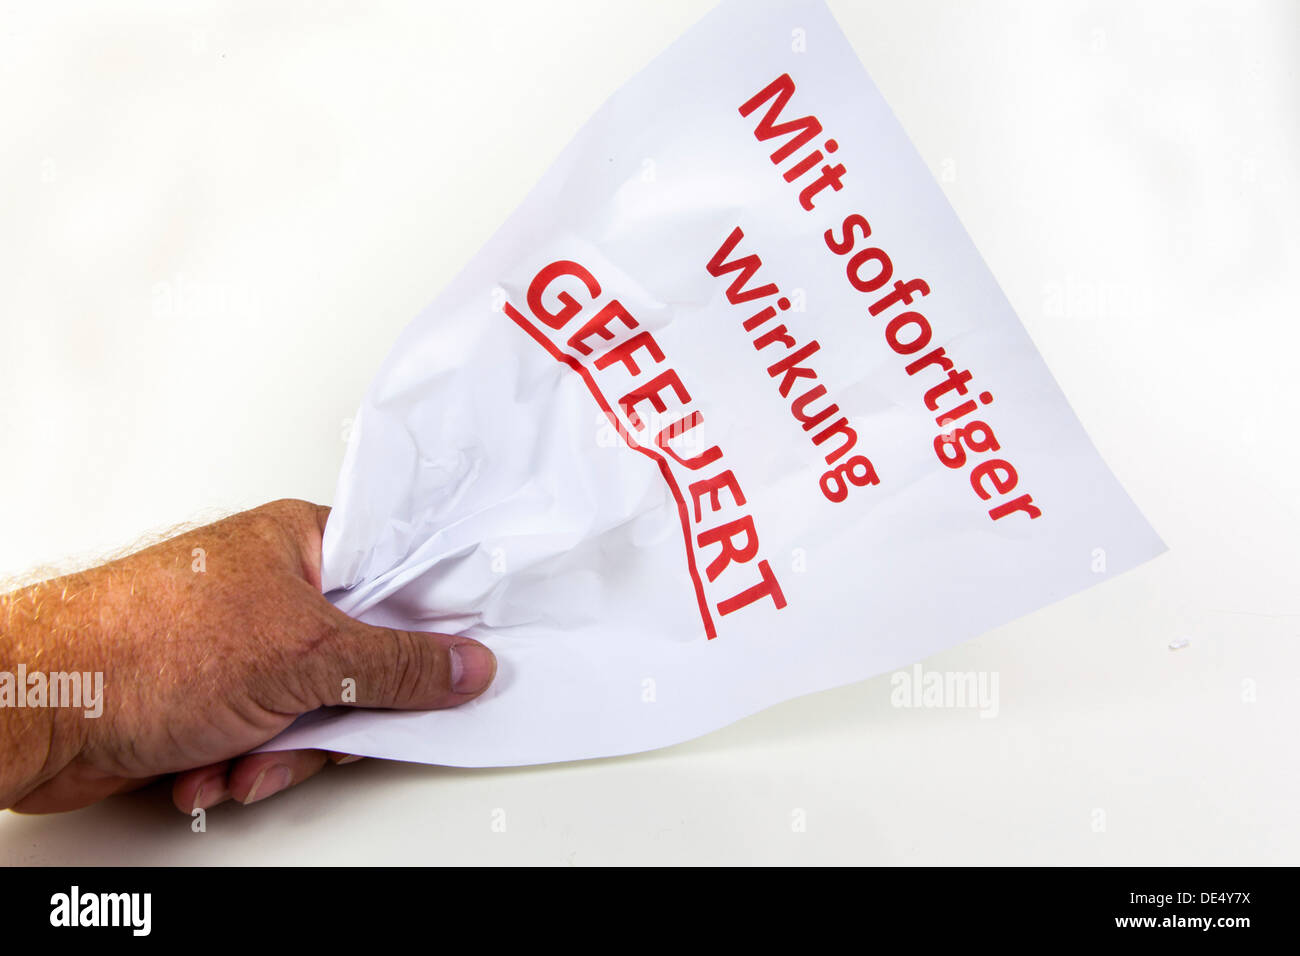 Crumpled letter of termination to an employee, Mit sofortiger Wirkung gefeuert, German for fired with immediate effect - Stock Image